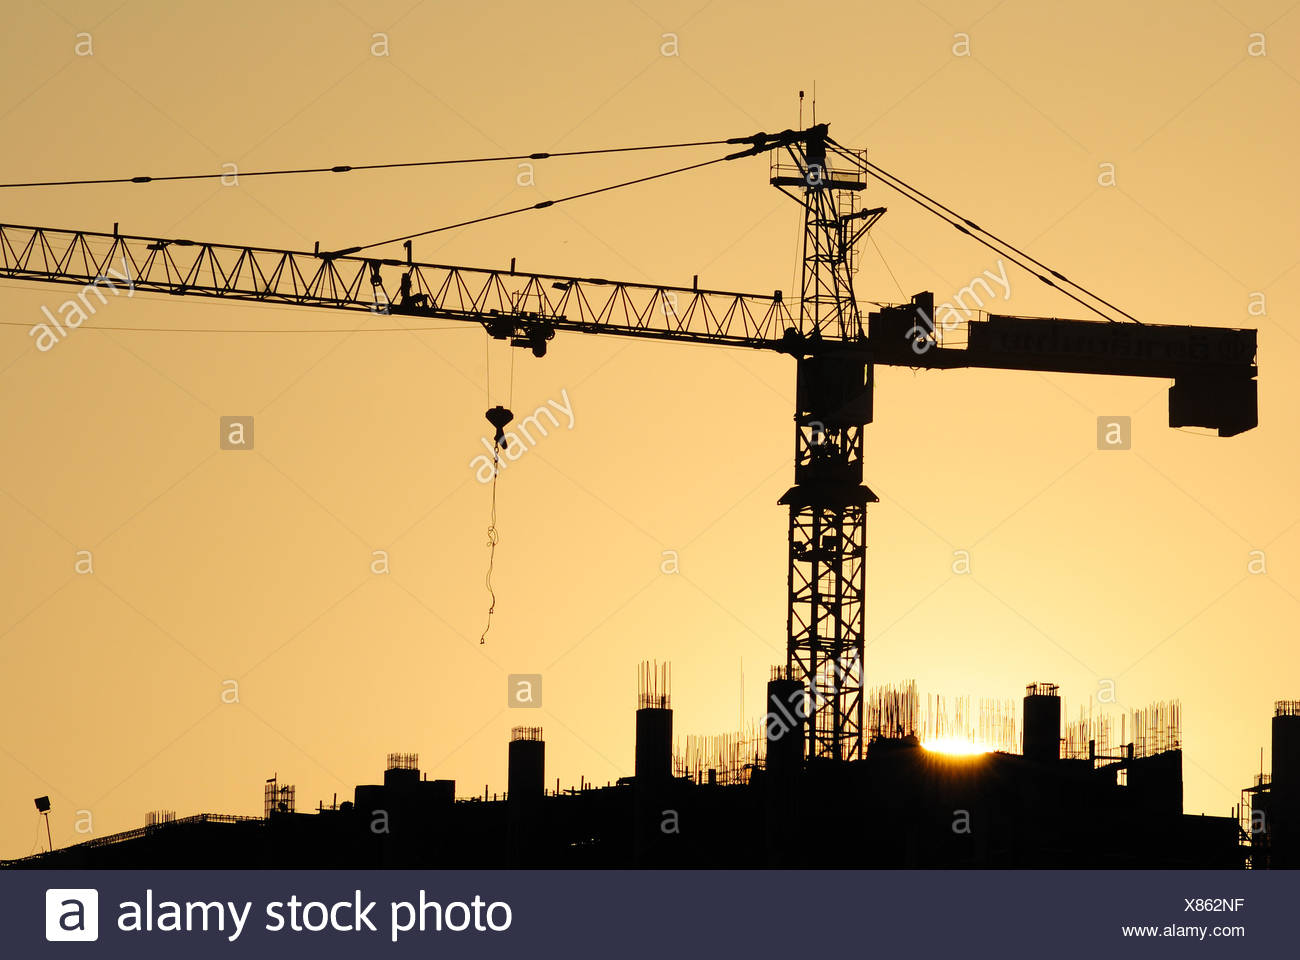 Silhouette Crane At Construction Site During Sunset - Stock Image